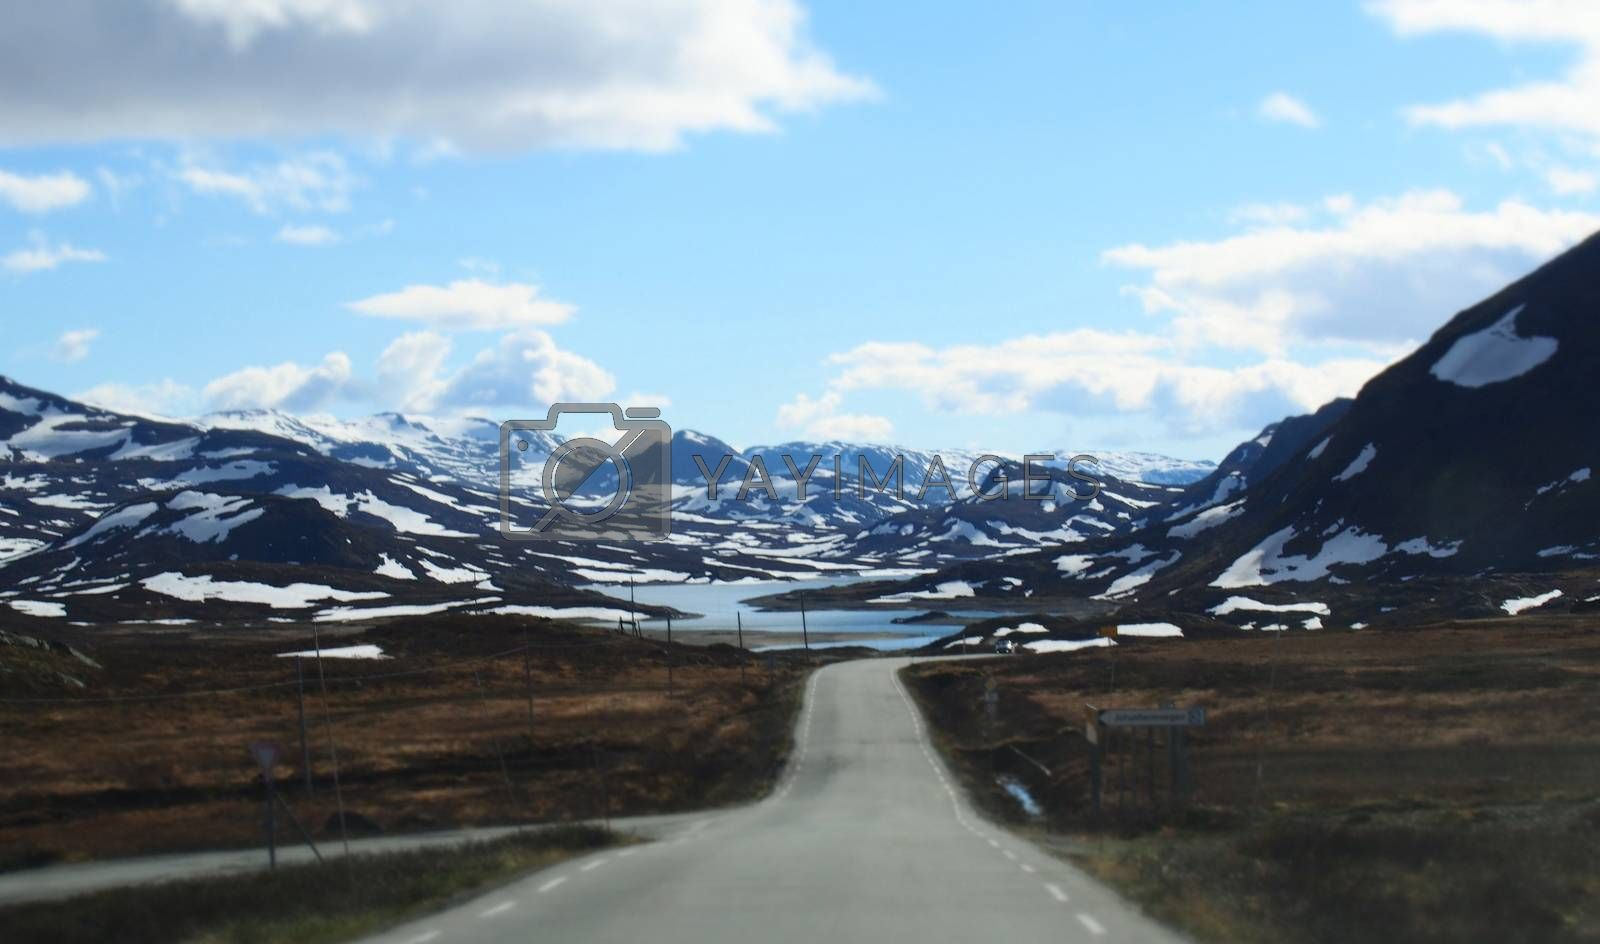 Valdresflya, Norway by benedijo2